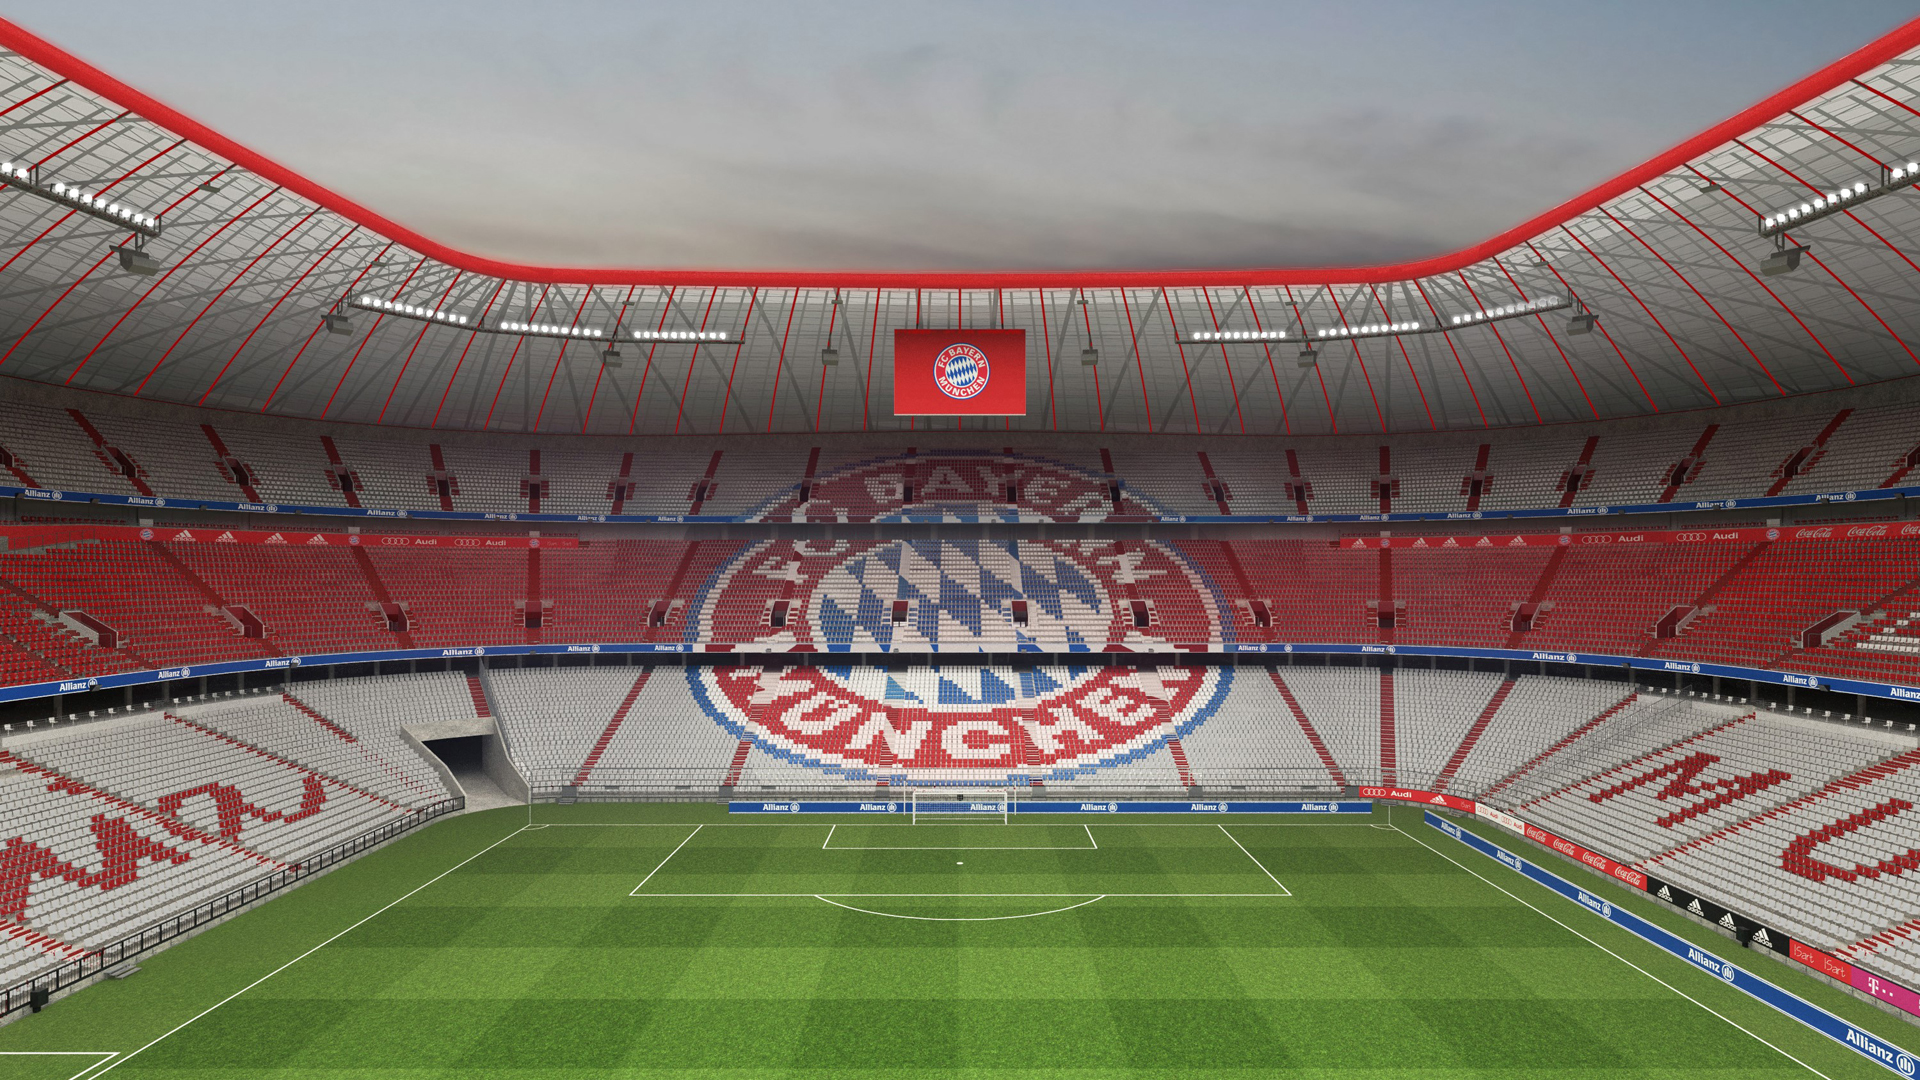 Allianz arena photo